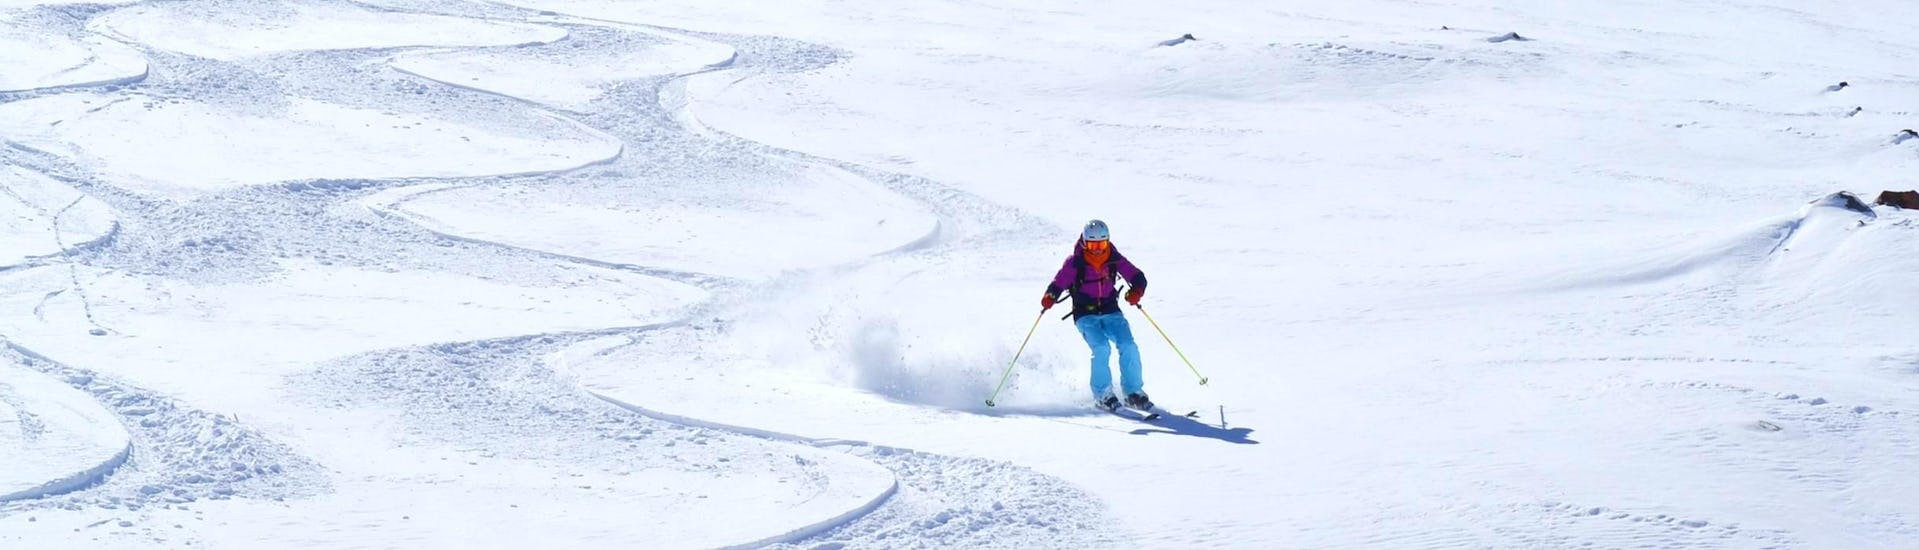 ski-lessons-for-adults-low-season-all-levels-esi-chatel-hero